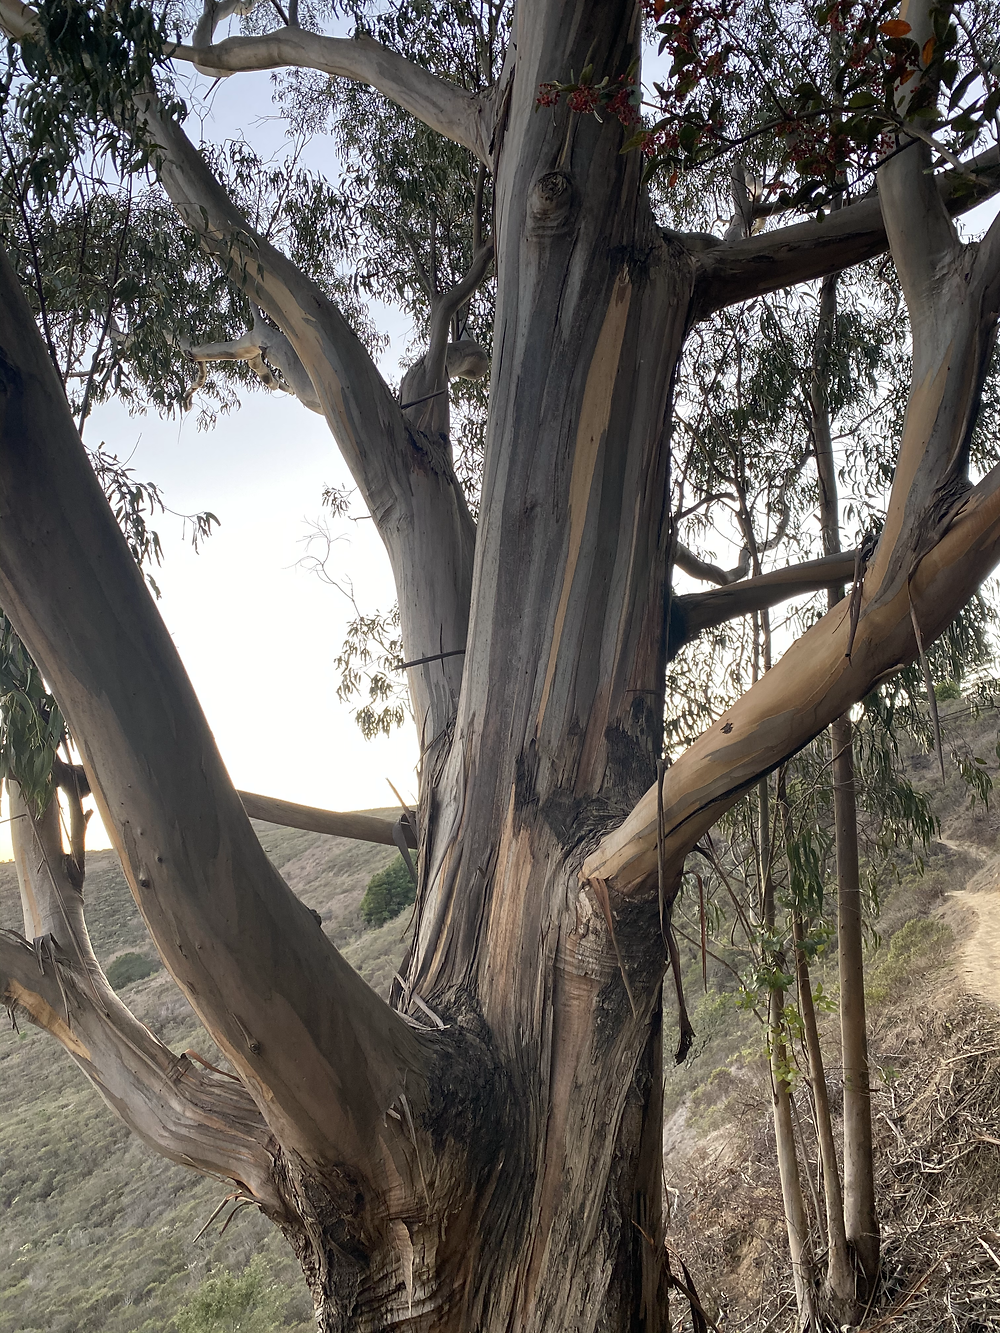 Scraps of bark from a Eucalyptus Tree naturally fall away from the trunk on Mount Tamalpias in Marin, California